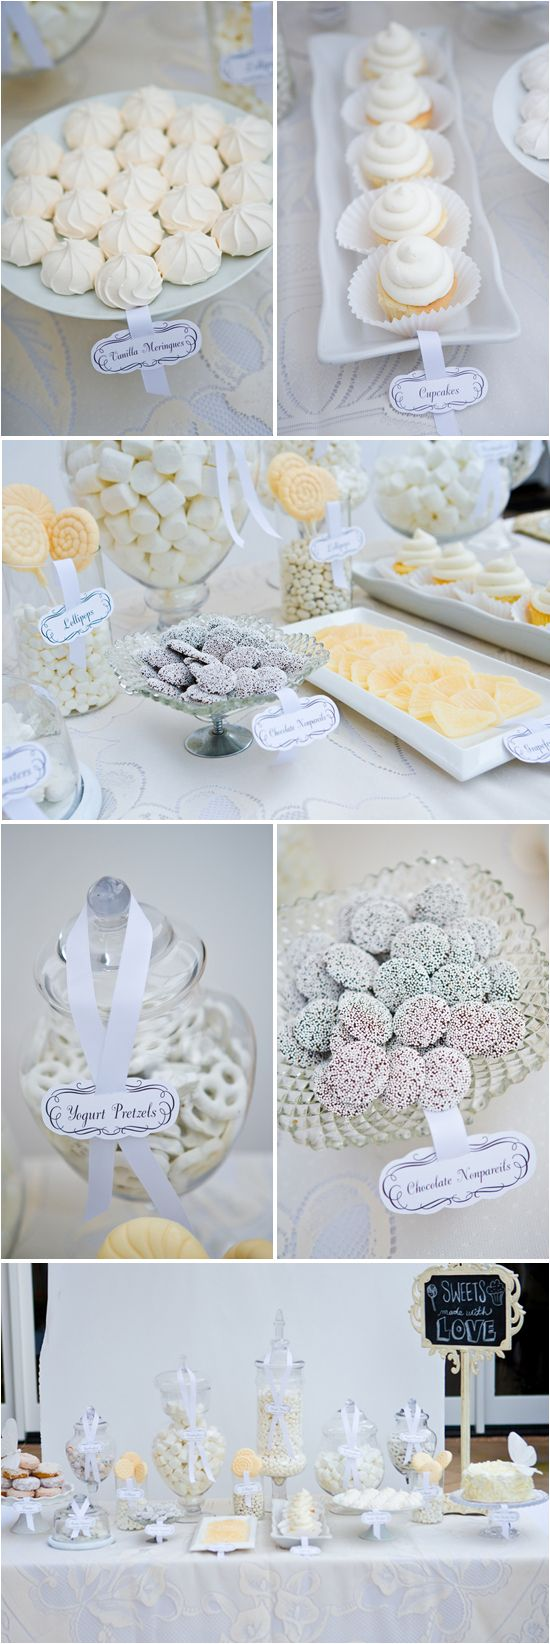 White / Cream / Ivory Candy & Dessert Tables | Wedding candy ...